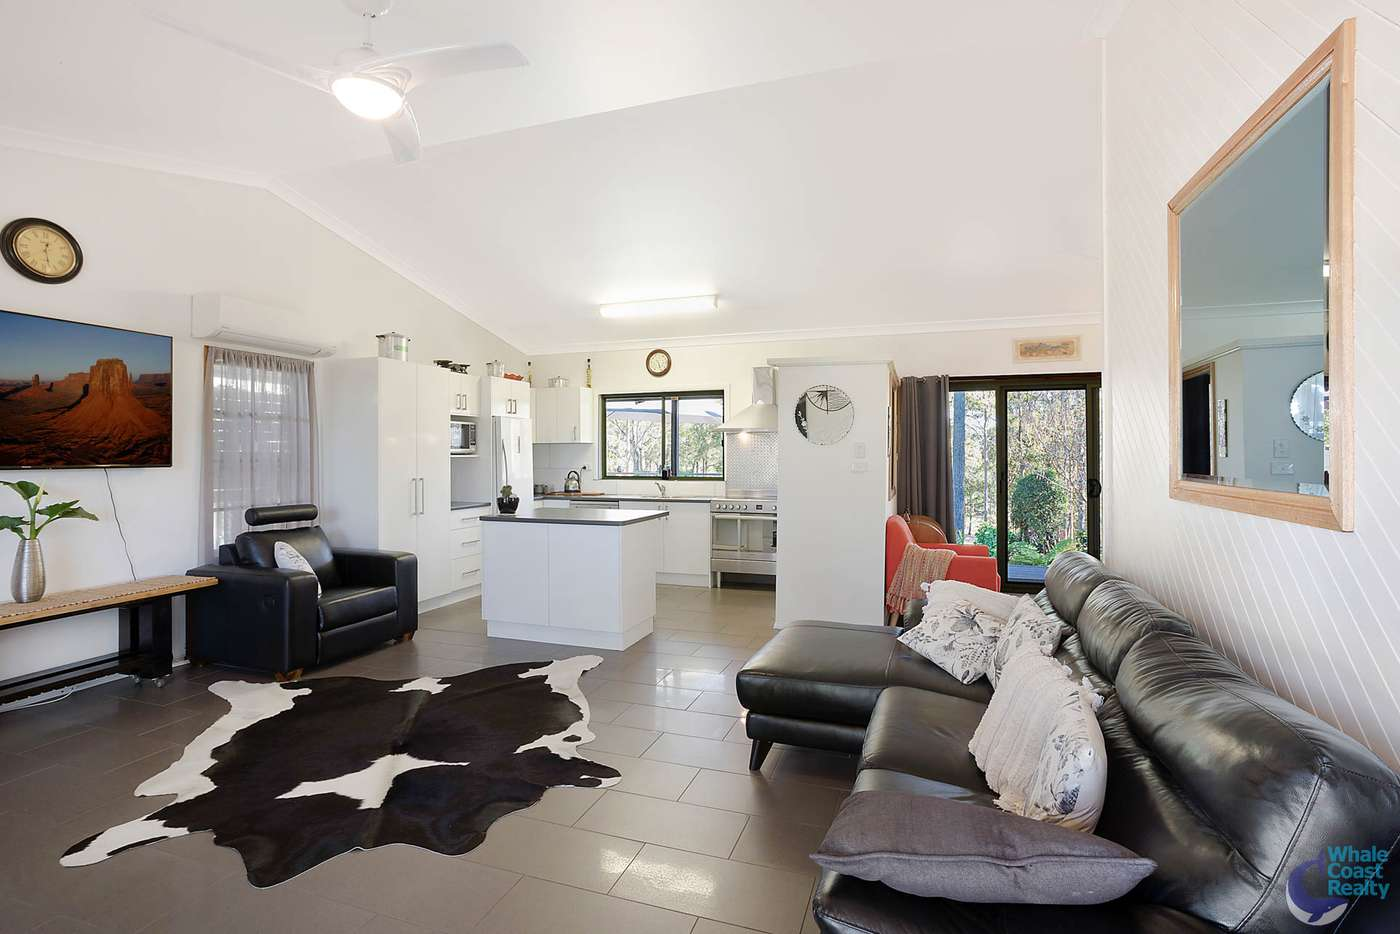 Sixth view of Homely house listing, 6 Wagonga Scenic Drive, Narooma NSW 2546